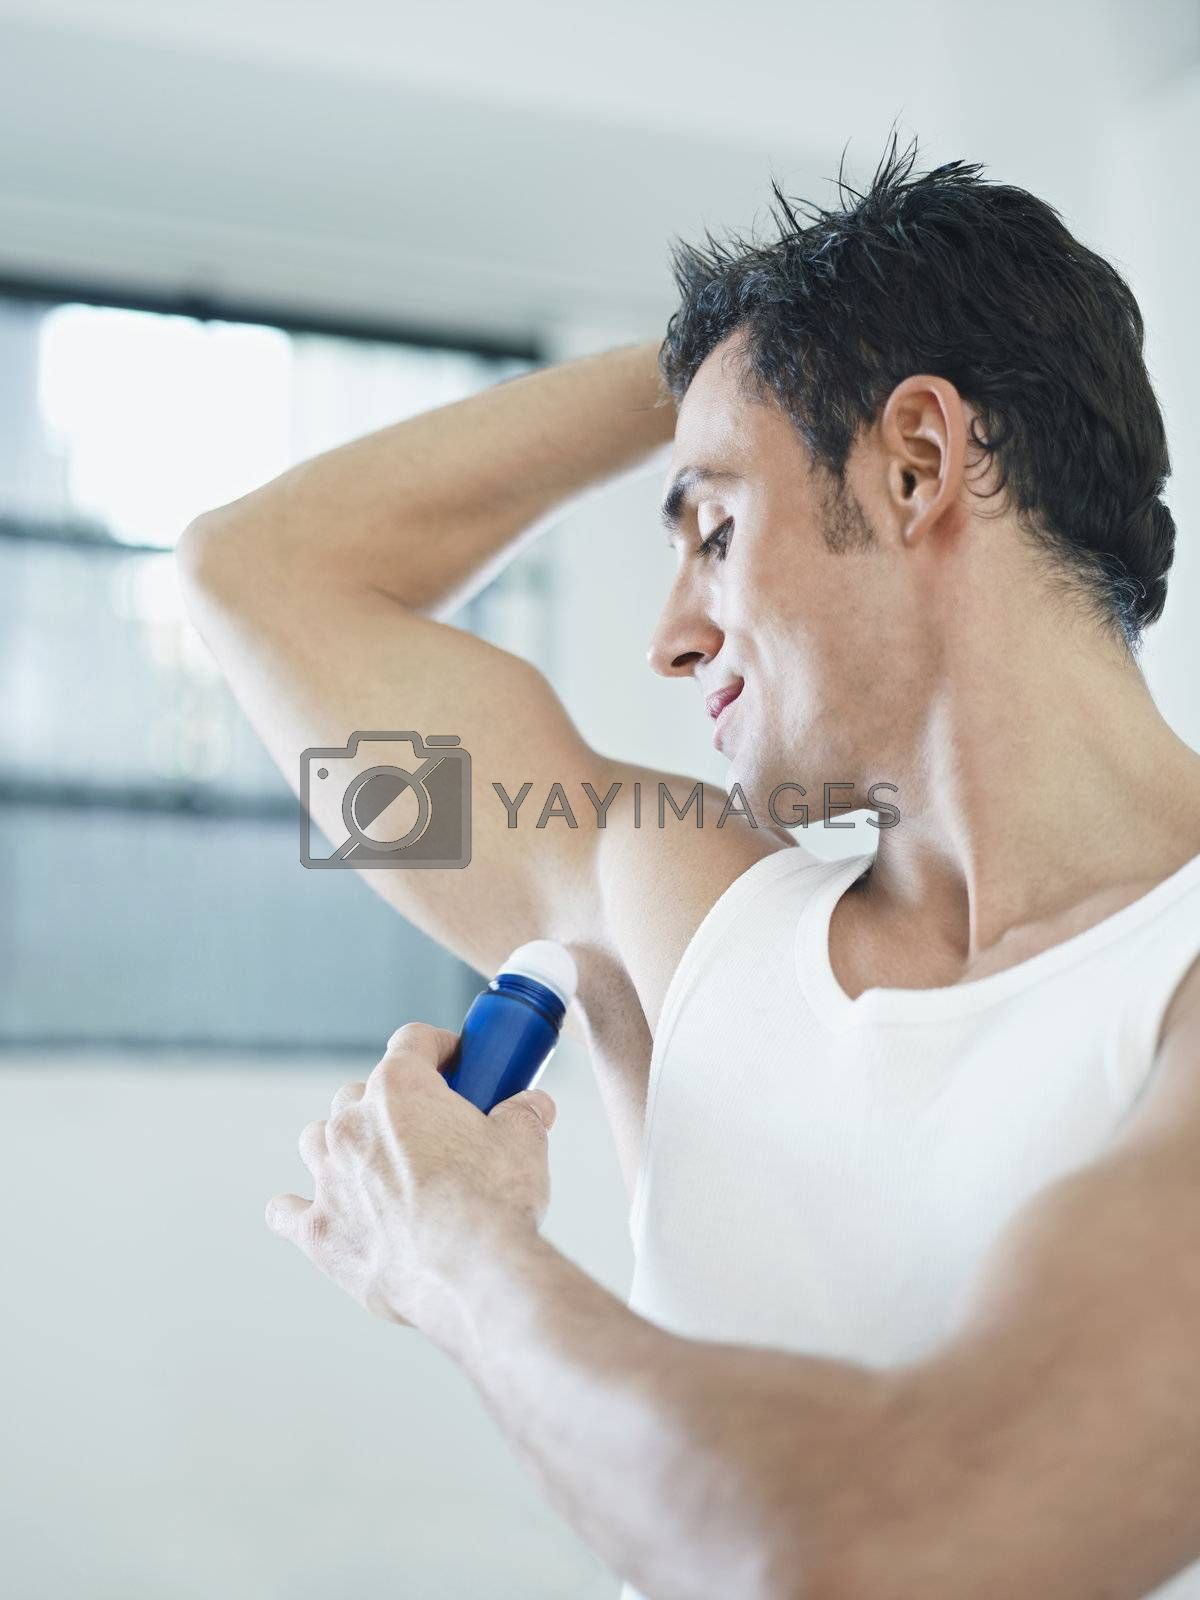 caucasian adult man applying stick deodorant. Vertical shape, waist up, copy space